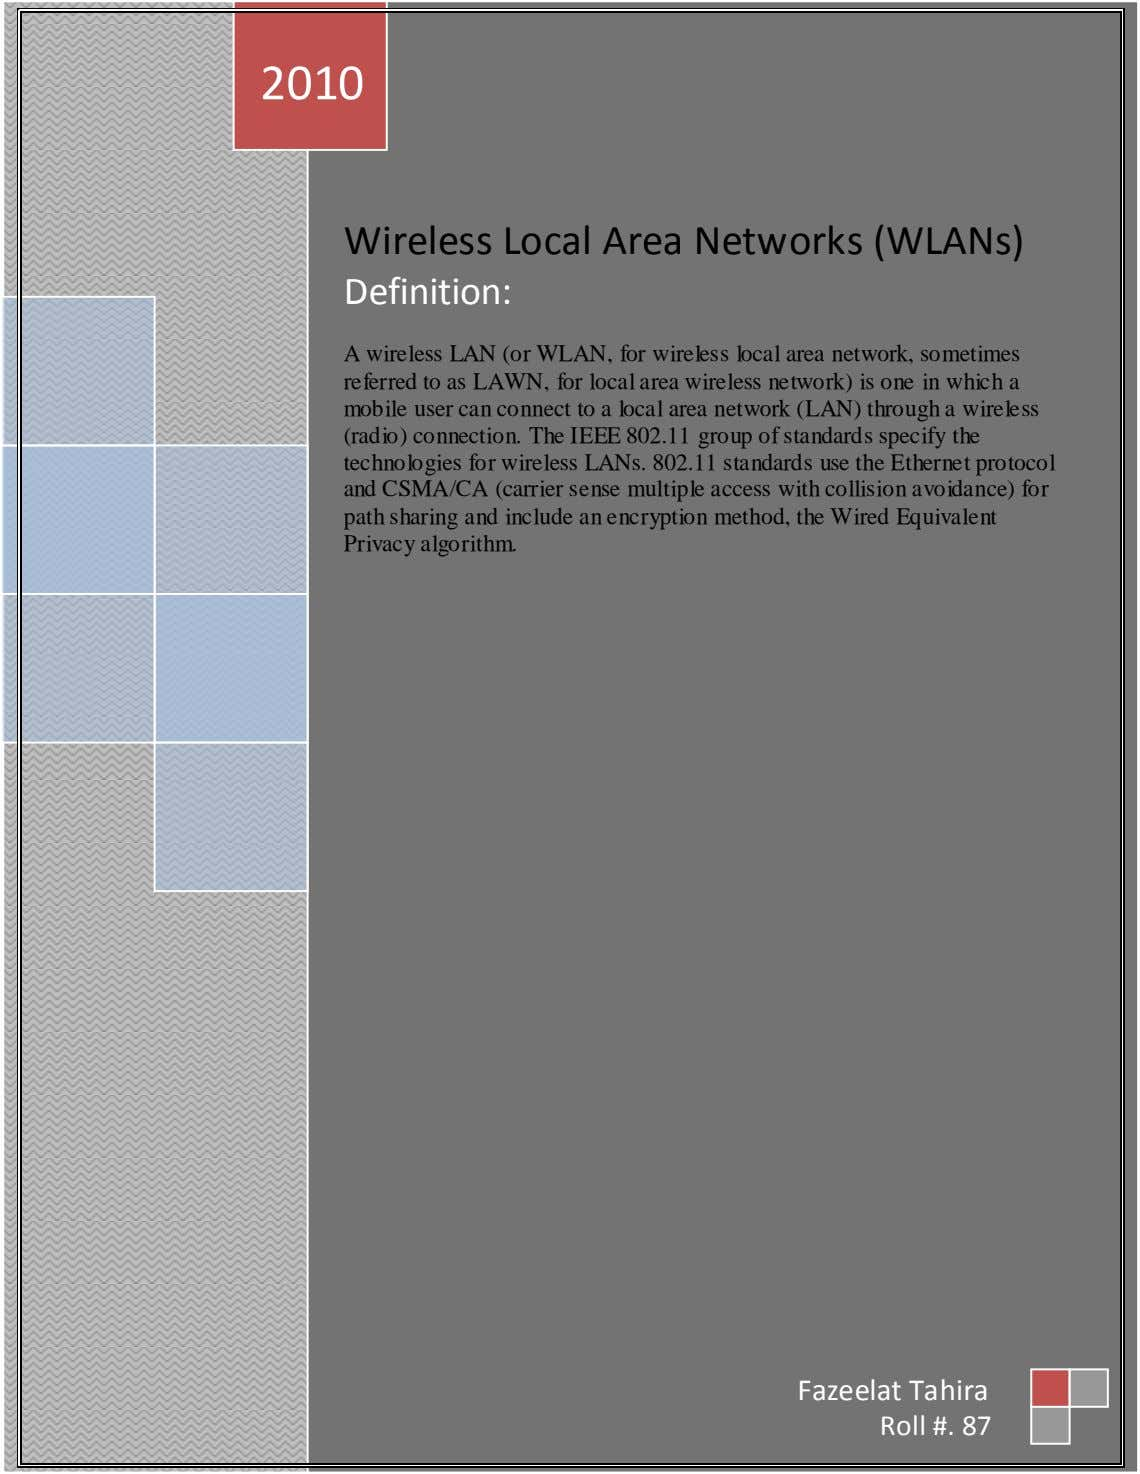 2010 Wireless Local Area Networks (WLANs) Definition: A wireless LAN (or WLAN, for wireless local